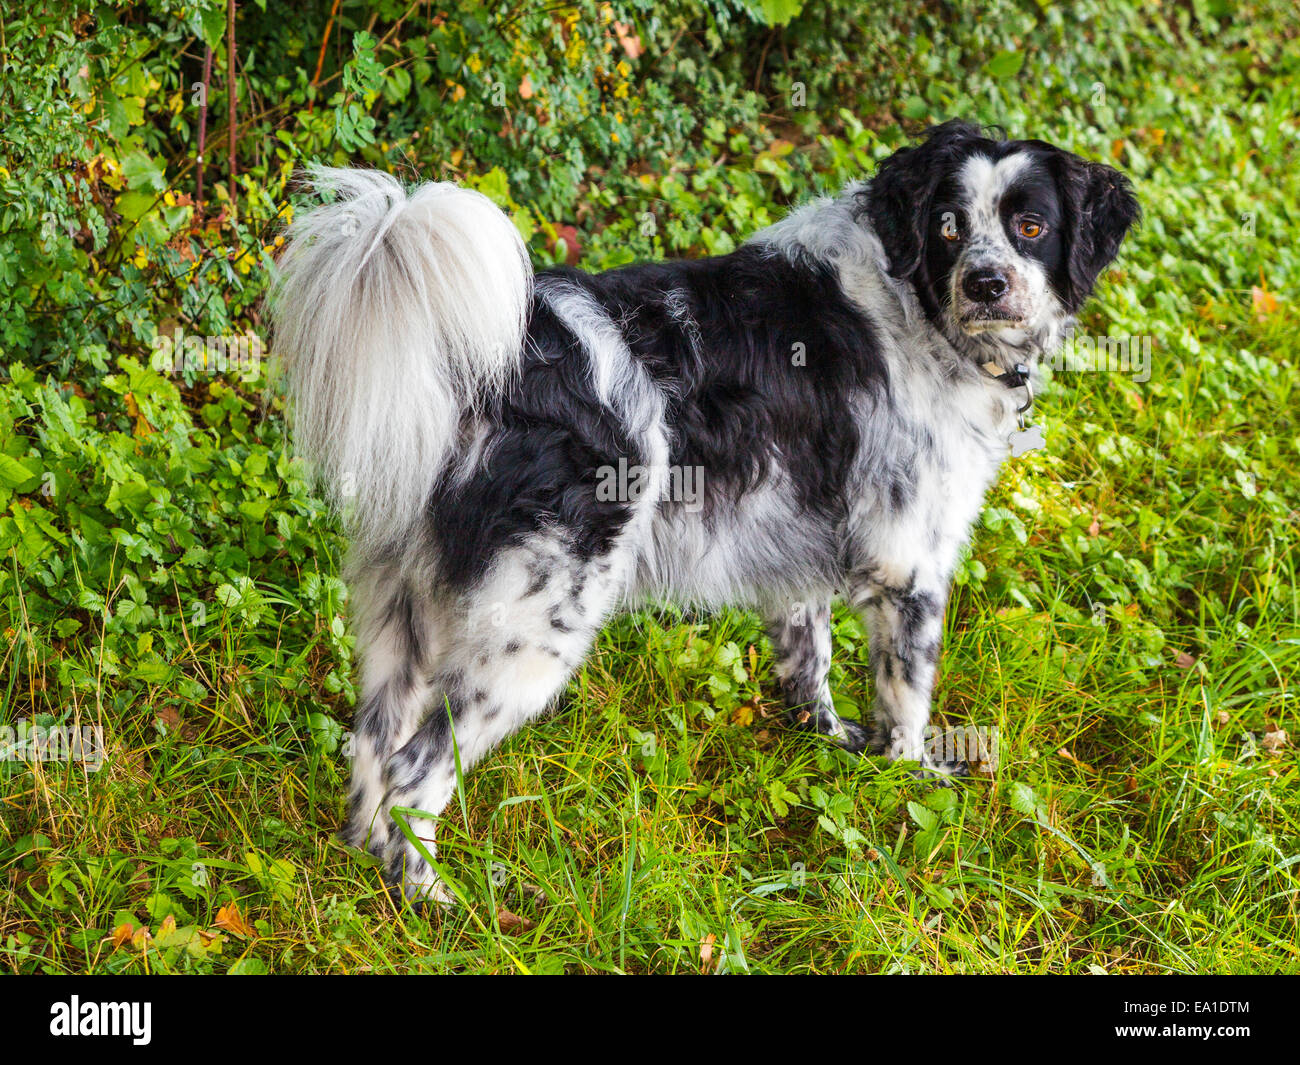 A black and white mongrel dog, with an alert look, against a background of vegetation. - Stock Image